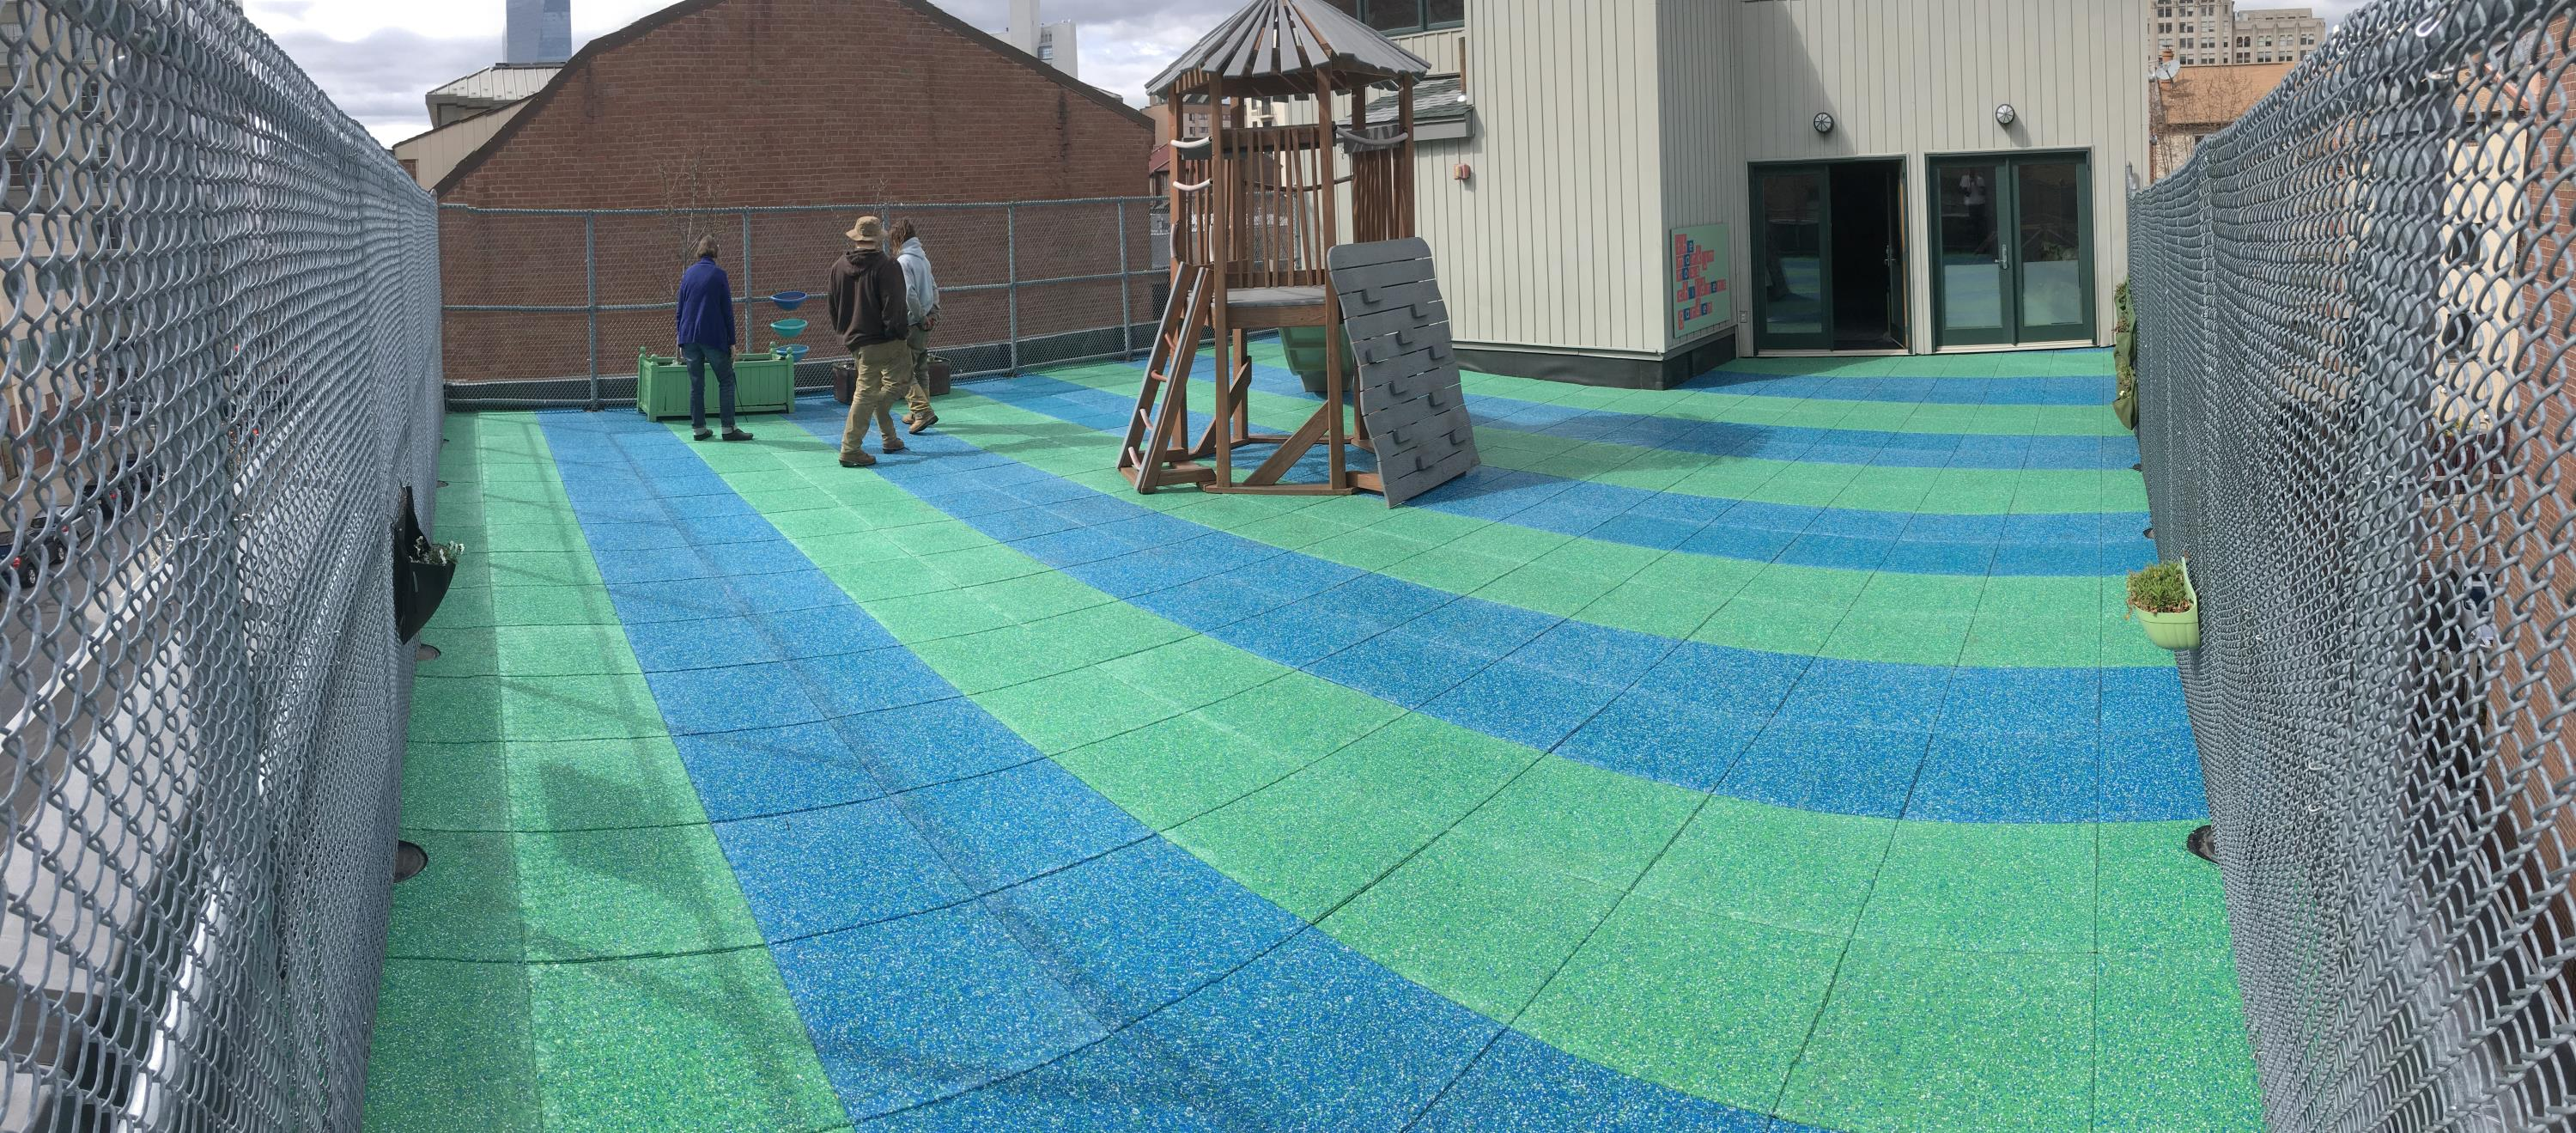 Rooftop Playground in Philly using Custom Blended TPV Rubber Tiles